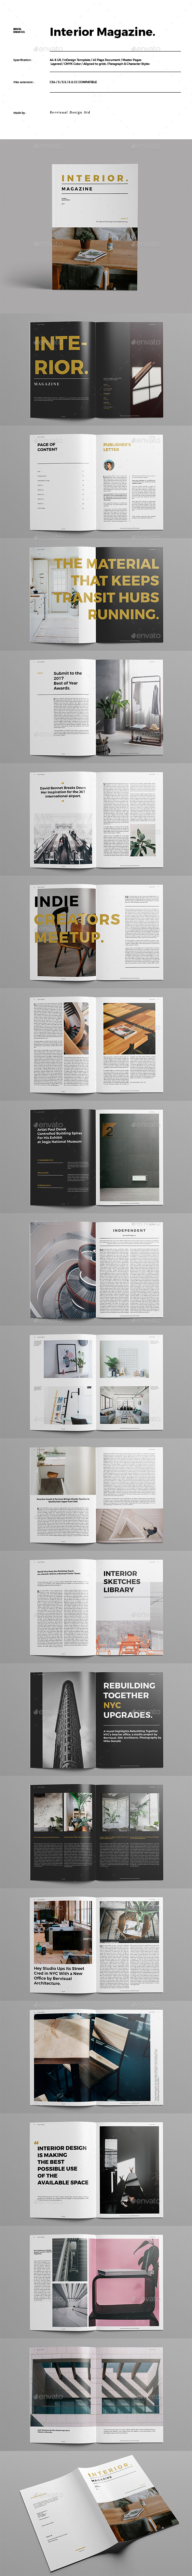 GraphicRiver Interior Magazine 20780350